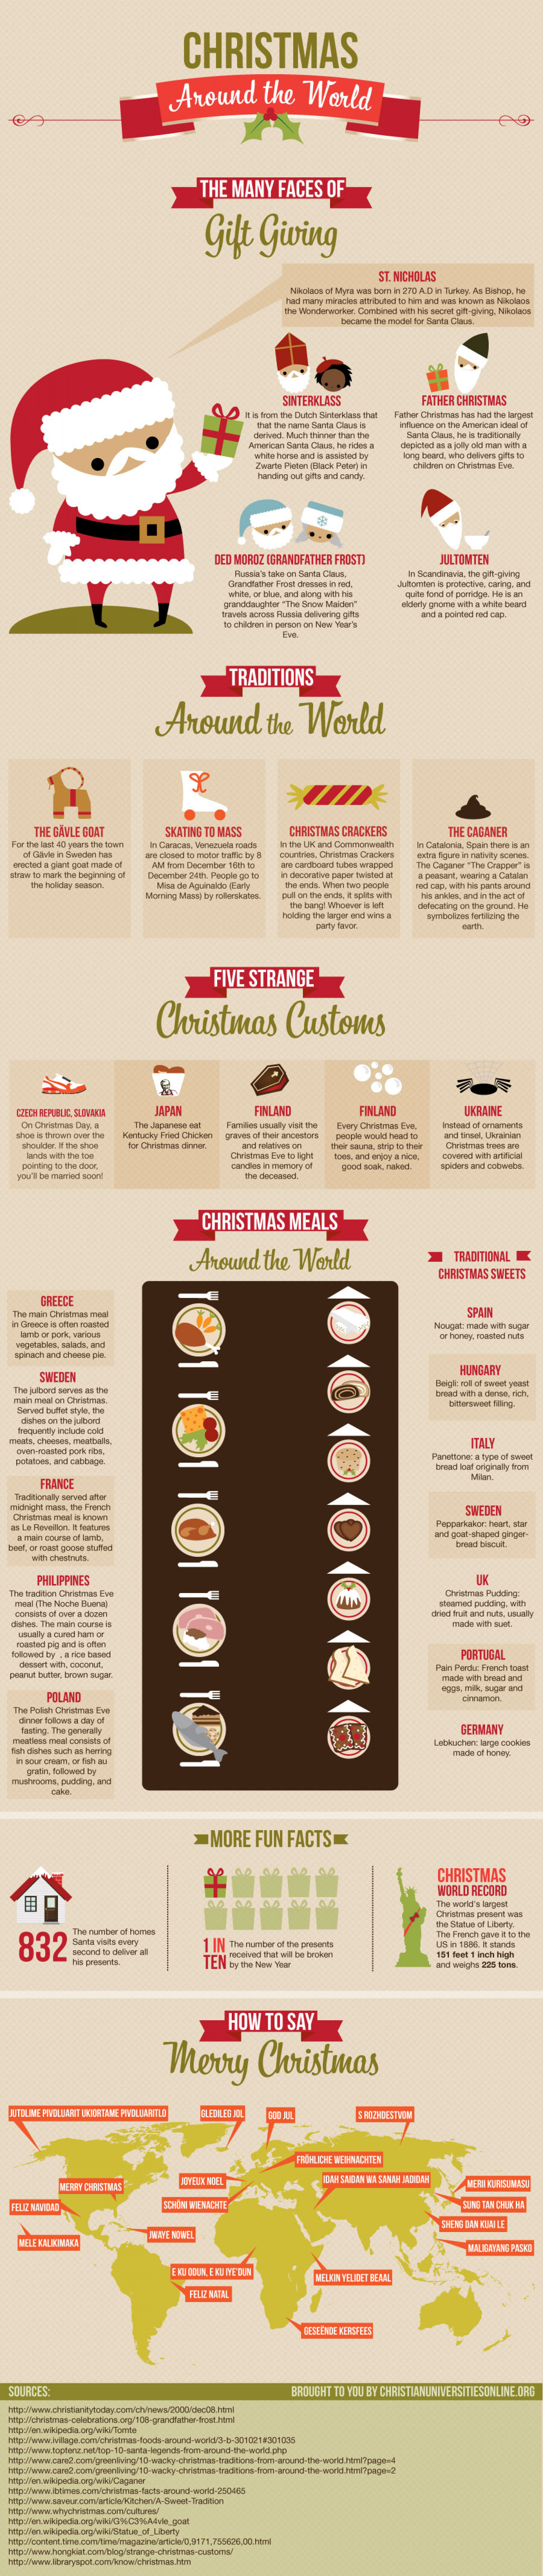 Christmas Traditions Around the World Infographic